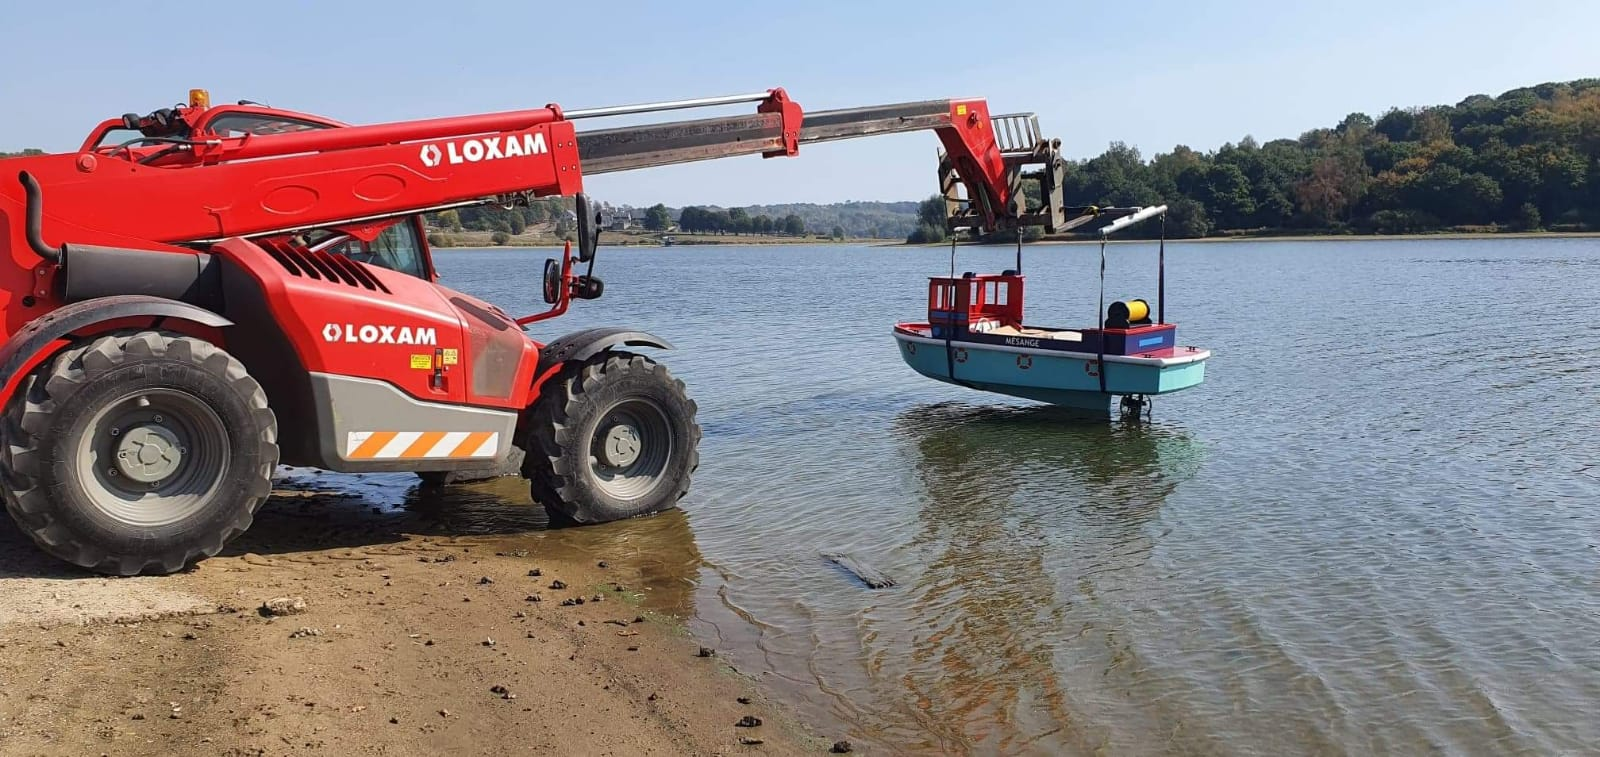 Launching new miniboats at Val Jolie in France.